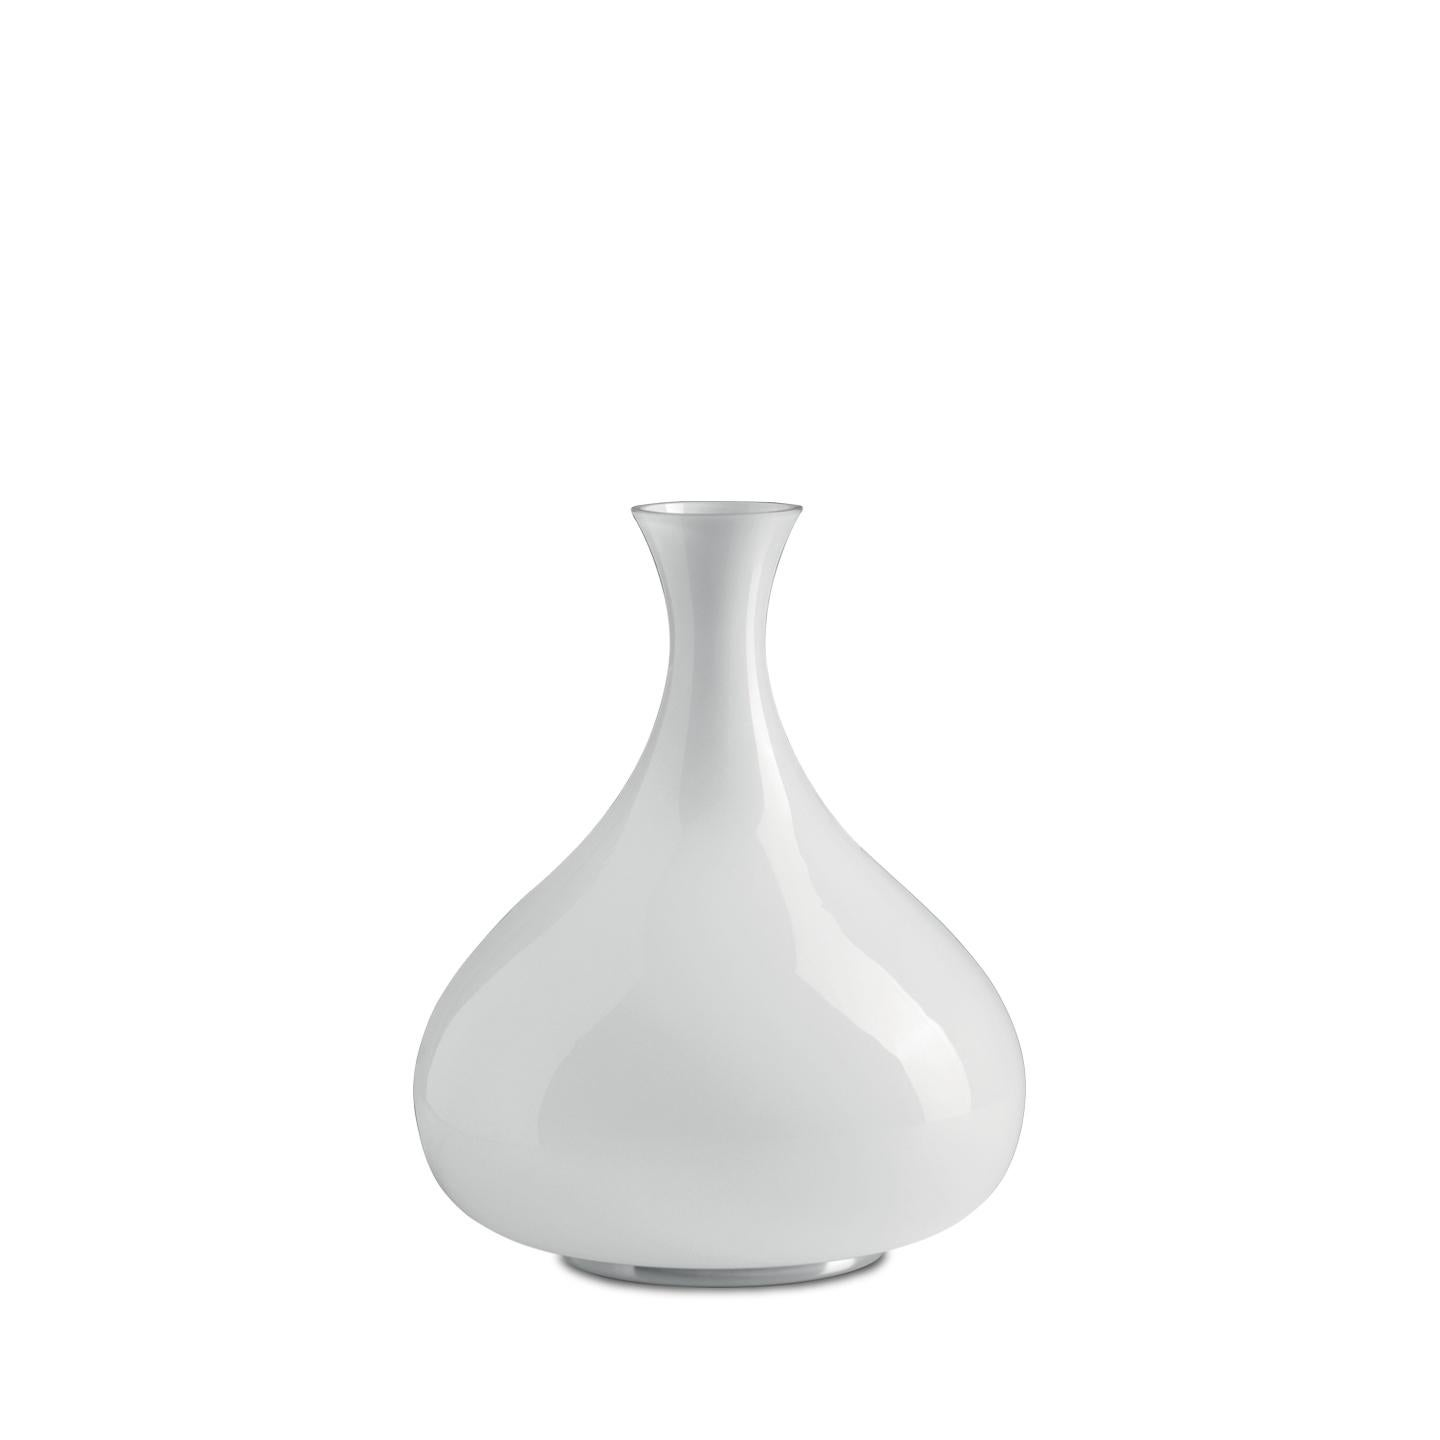 Leucos Summer T Table Light in Glossy White and Chrome by Eva Zeisel